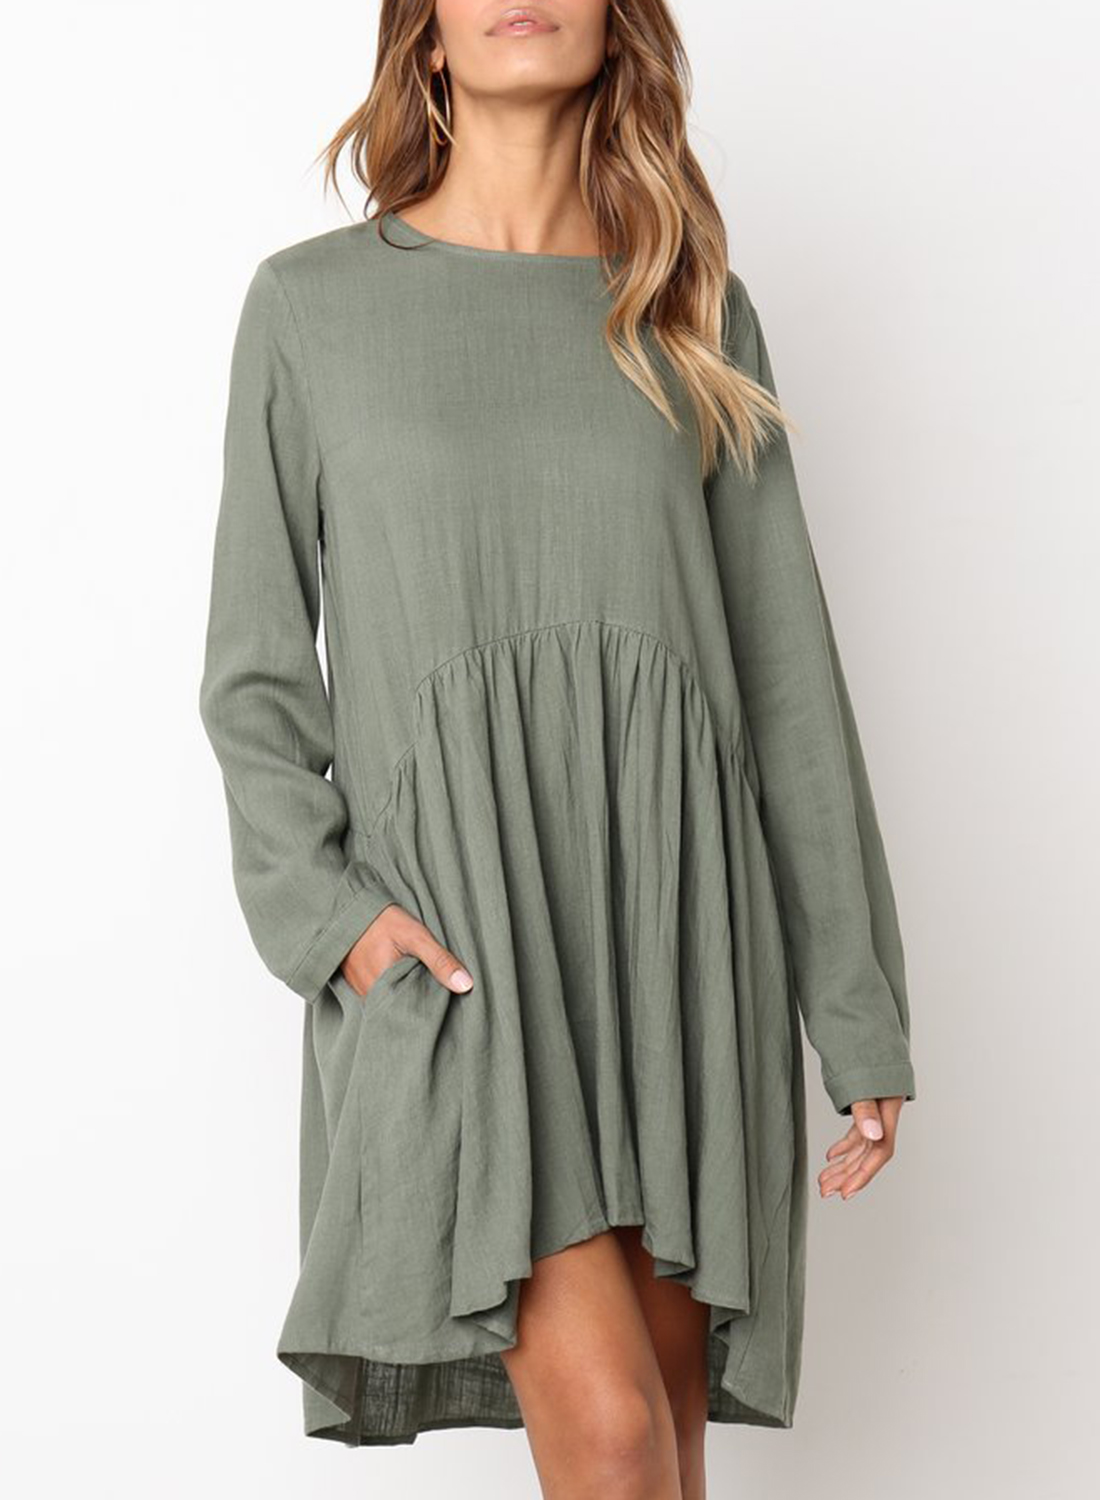 7c7f968090b3 Army green Round Neck Long Sleeve High Low Loose Pleated Mini Dress With  Pockets STYLESIMO. Loading zoom